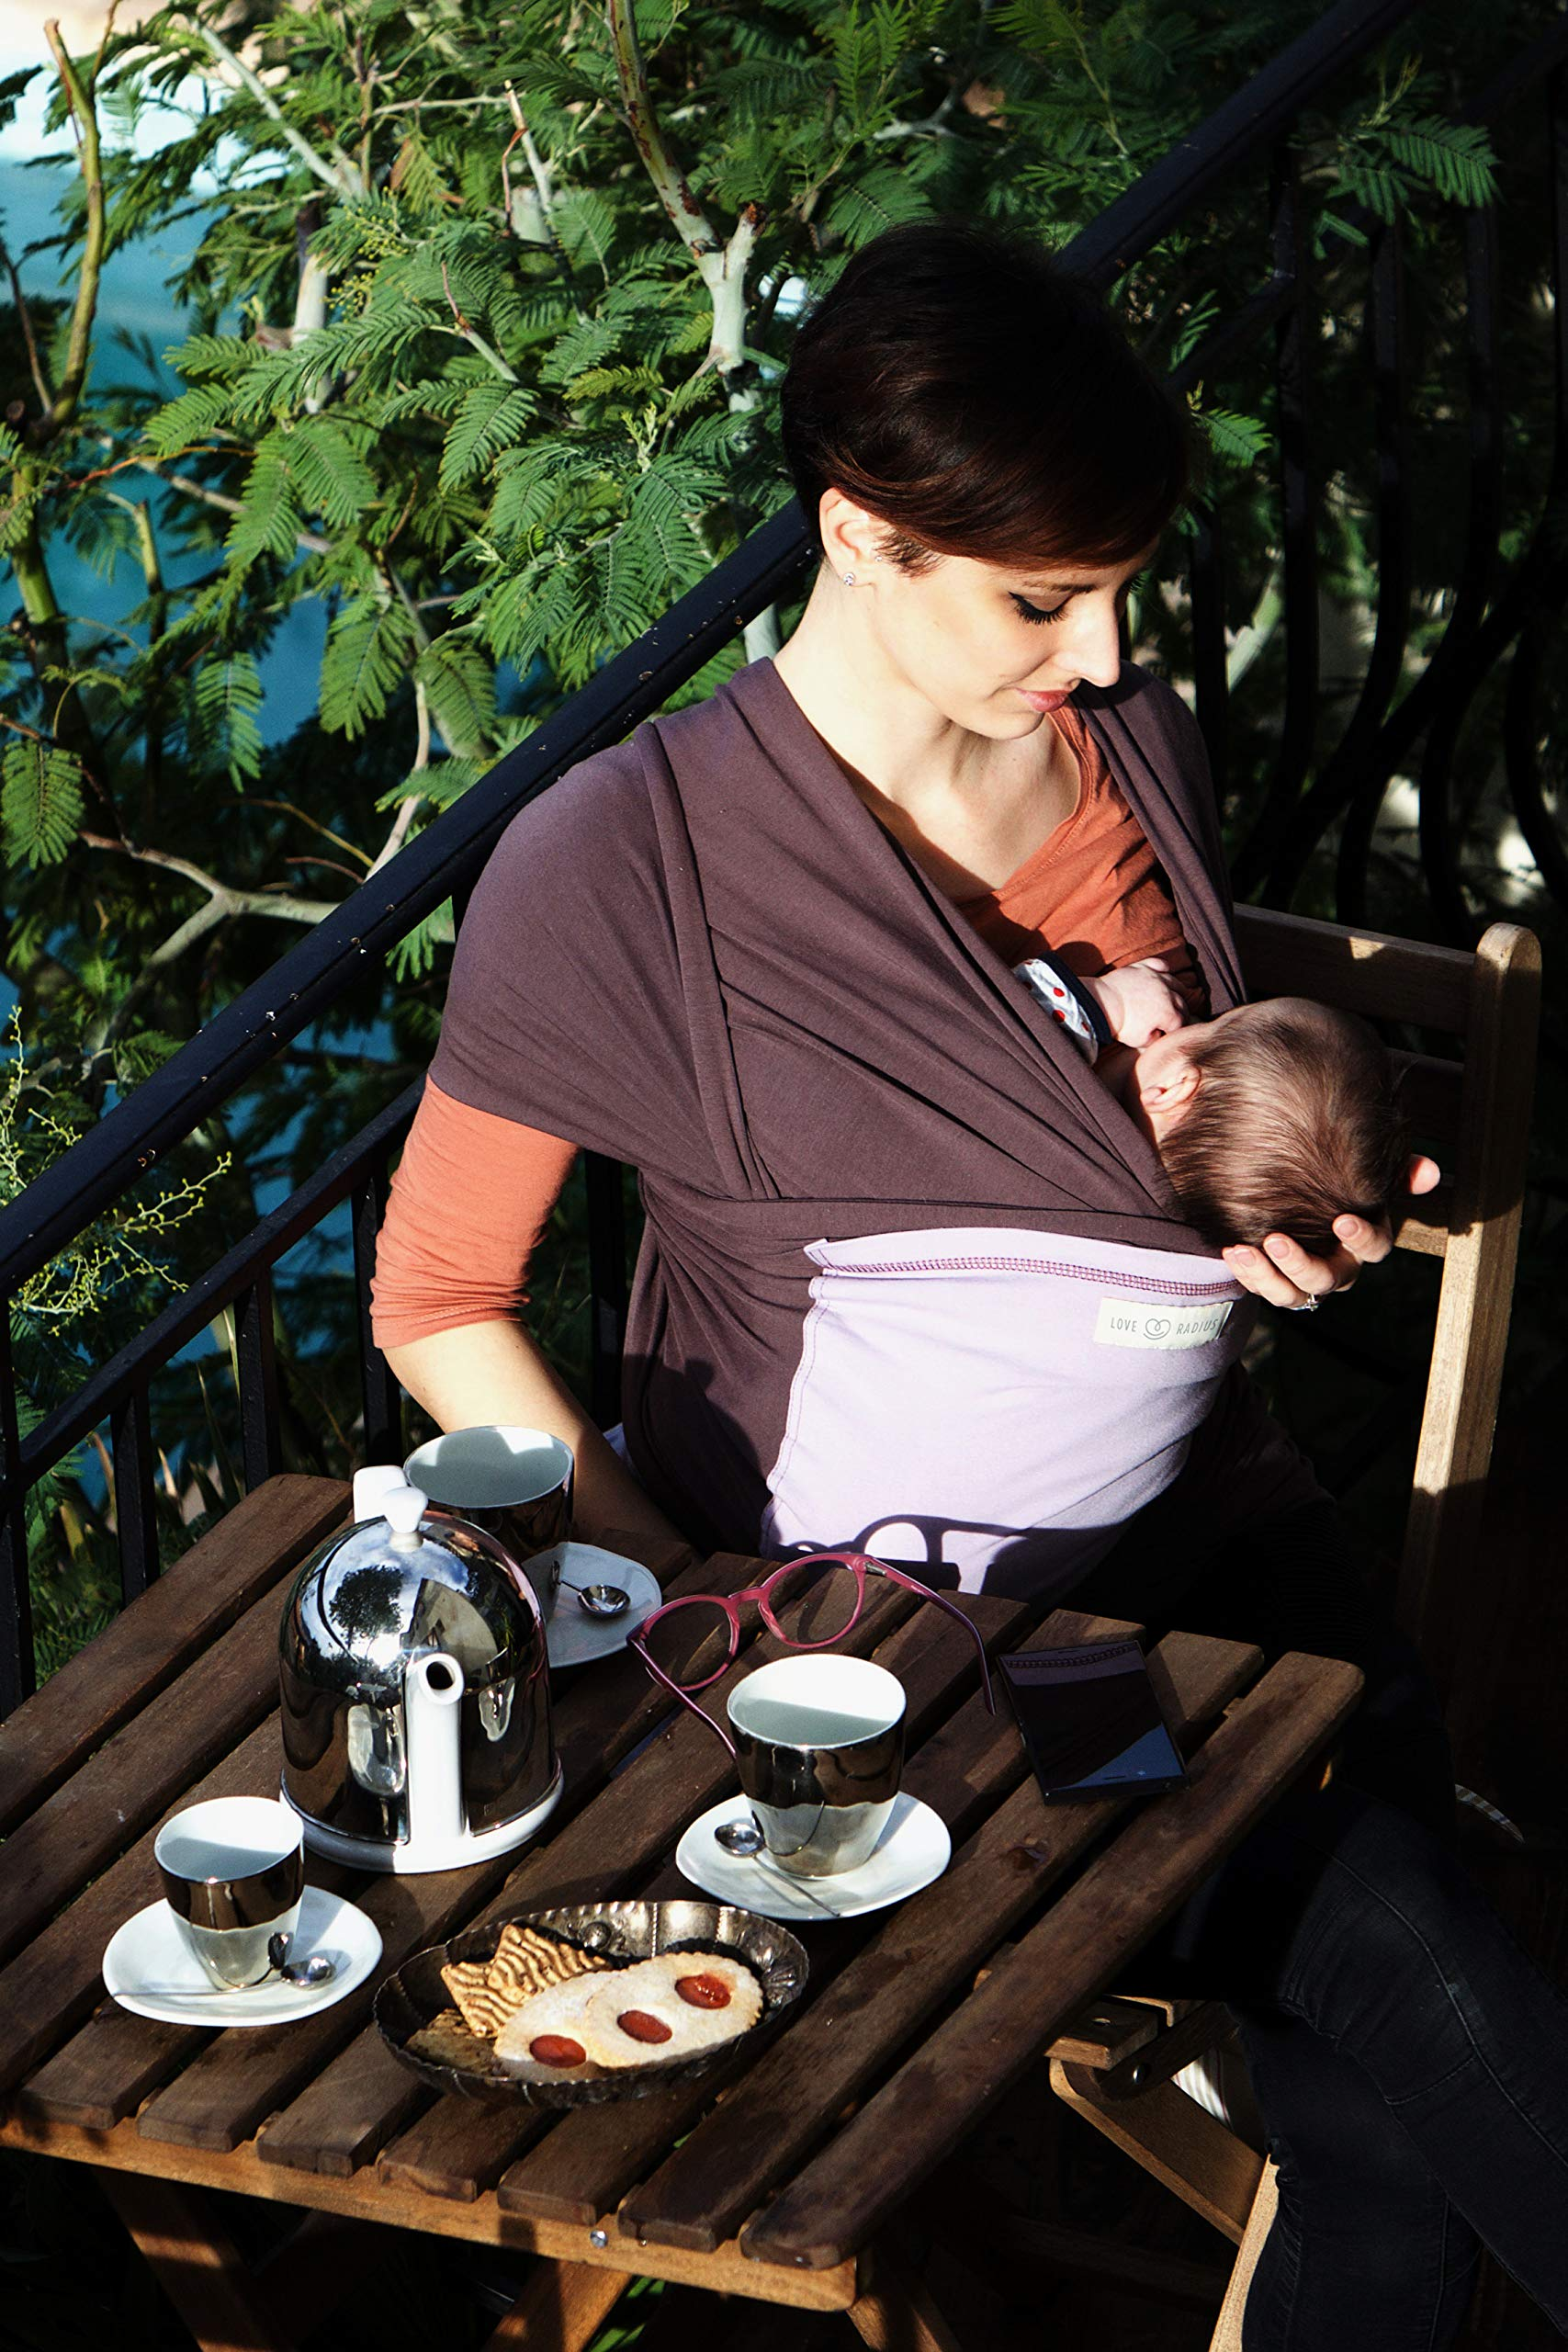 Je Porte Mon Bébé L'Originale Baby Sling Je Porte Mon Bébé High Quality Elastic Baby Carrier Dense, elastic and breathable material Great support, fits your baby's body like a second skin. 9